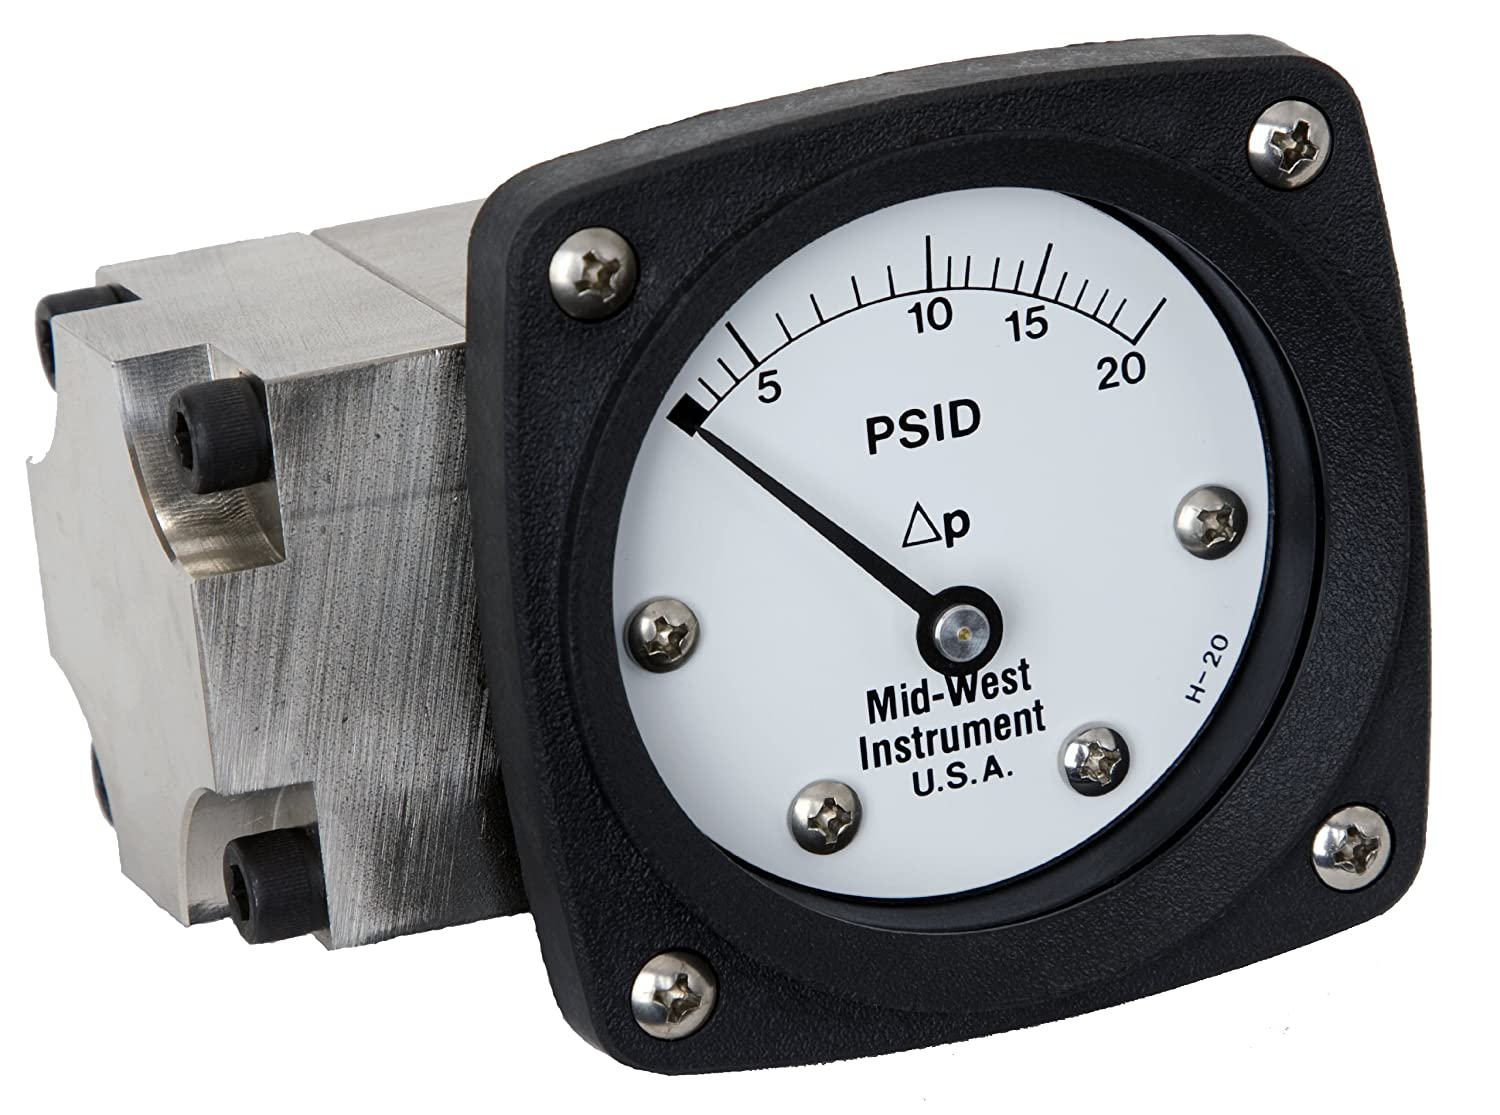 1//4 FNPT Back Connection 0-30 IN H2O Range Mid-West 142-AC-00-OO-30H Differential Pressure Gauge with Aluminum Body and 316 Stainless Steel Internals Diaphragm Type 3000 psig SWP 4-1//2 Dial 3//2//3/% Full Scale Accuracy